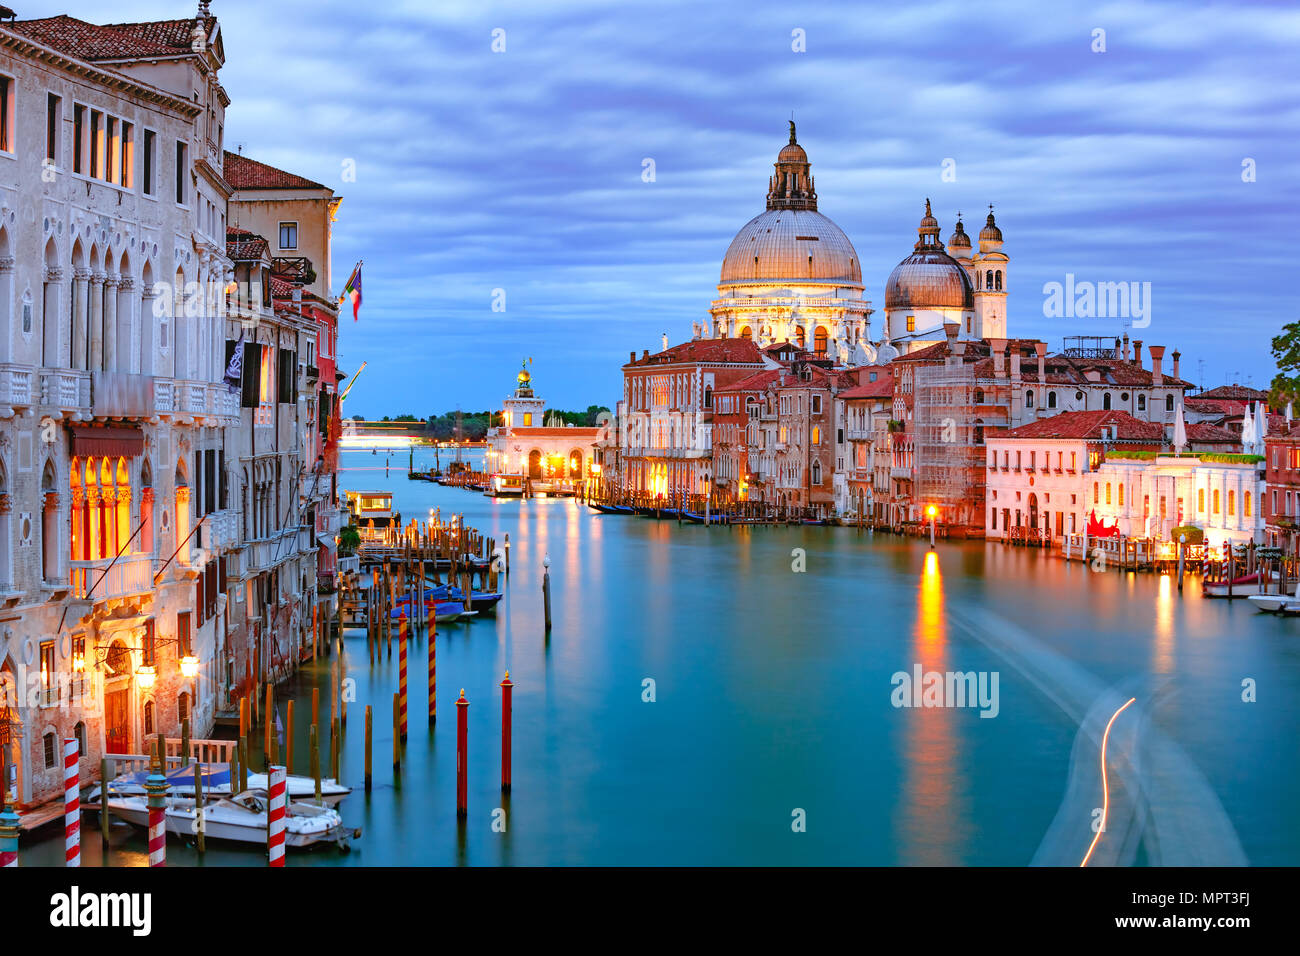 Grand canal at night in Venice, Italy - Stock Image